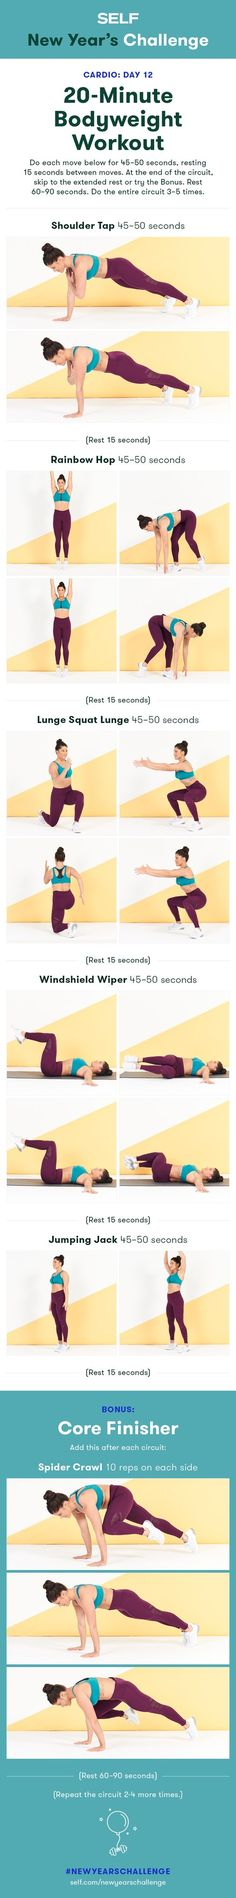 30-Minute Bodyweight Workout Free Weight Workout dd60db3af77